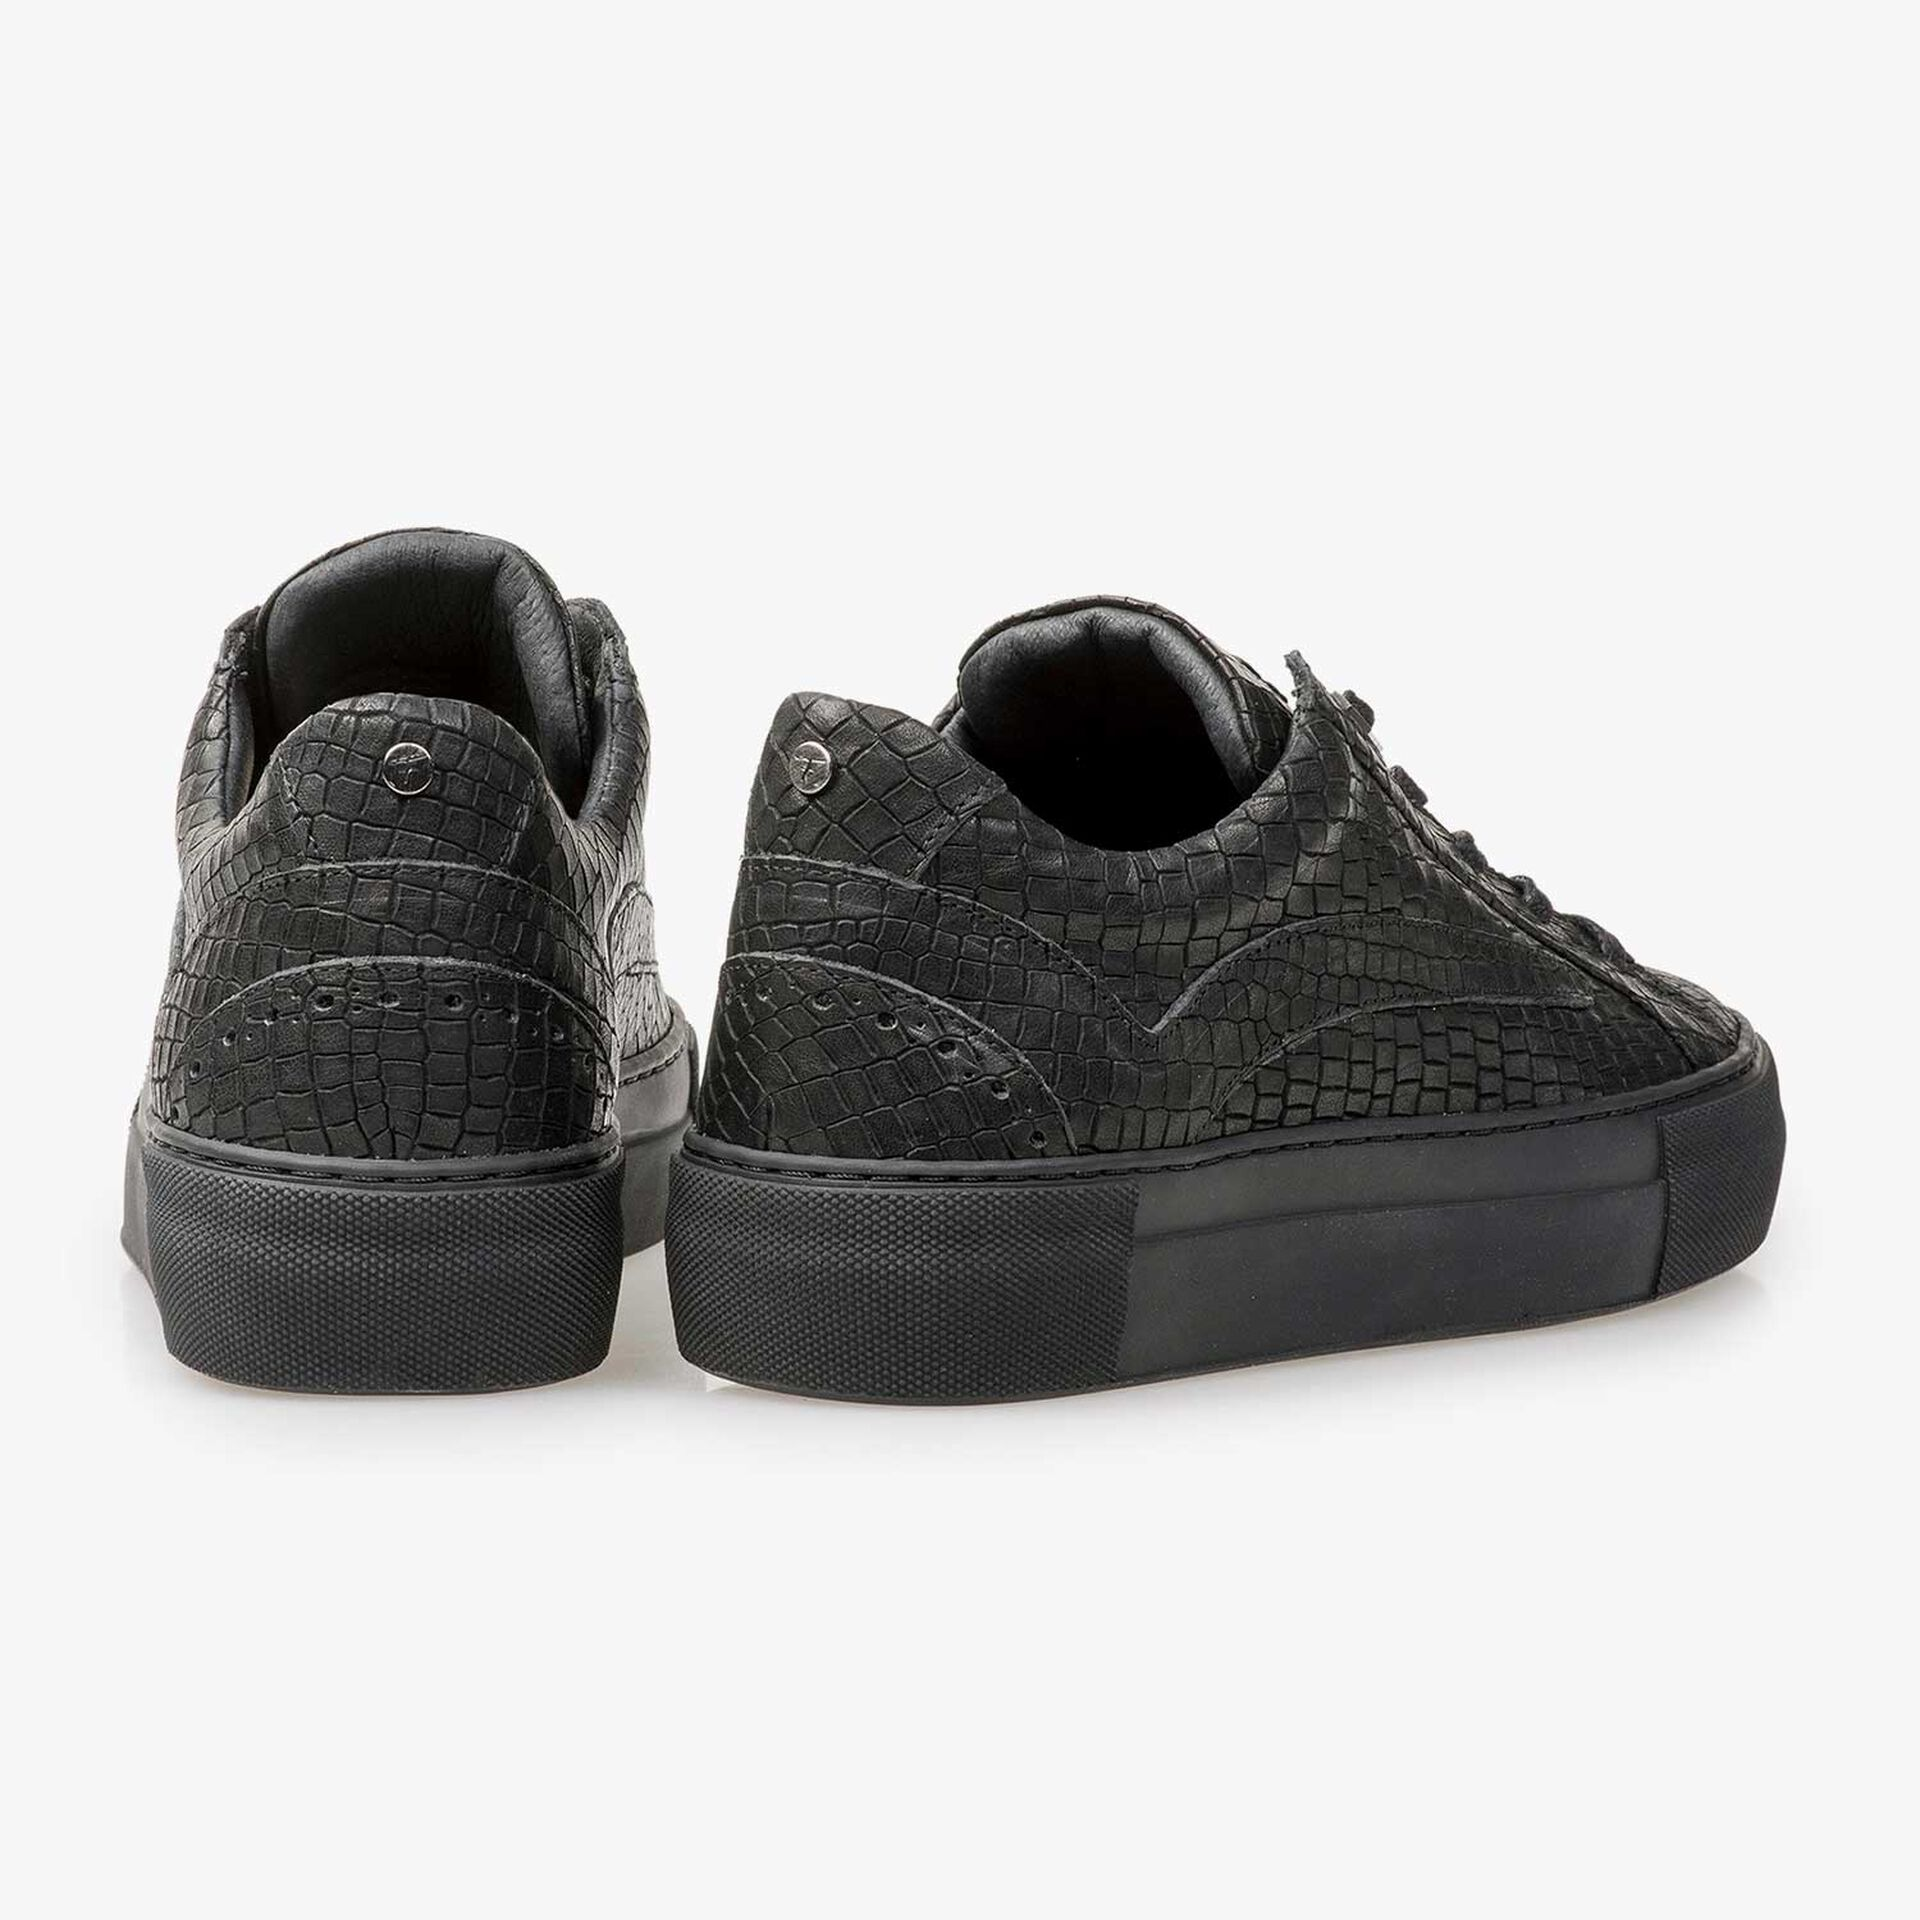 Black leather sneaker with croco print